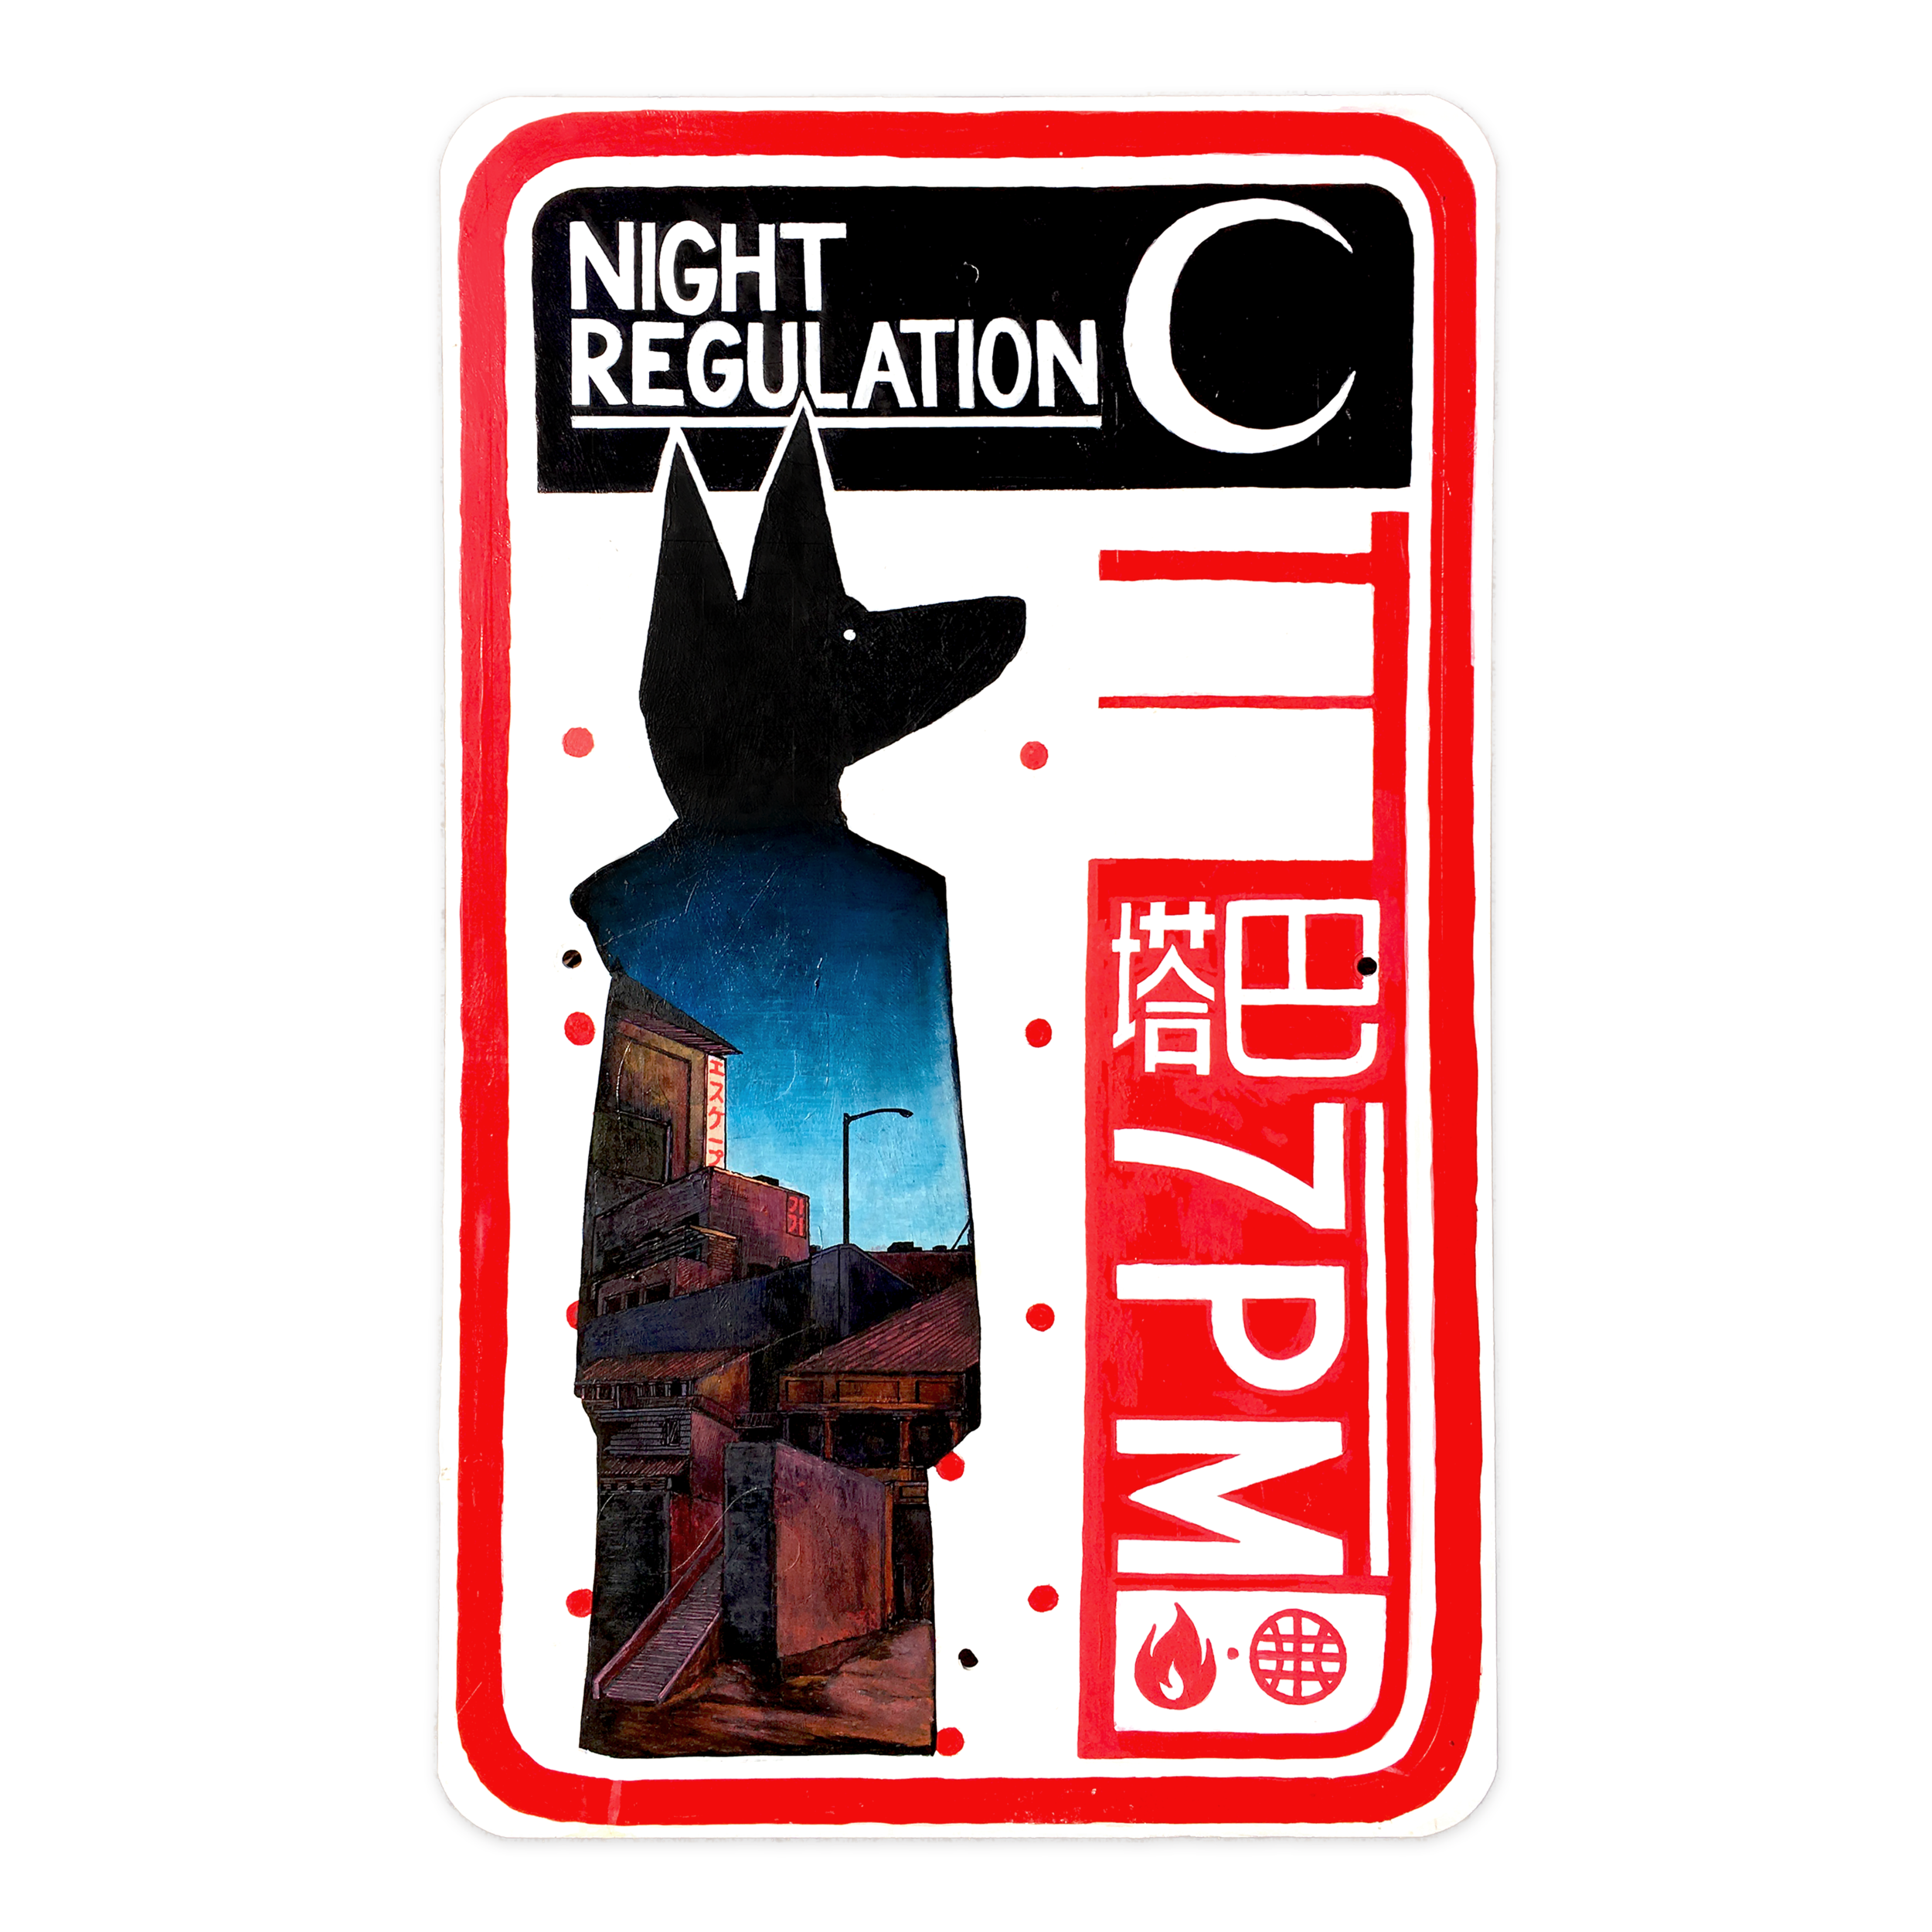 Night_Regulation(Foster).png